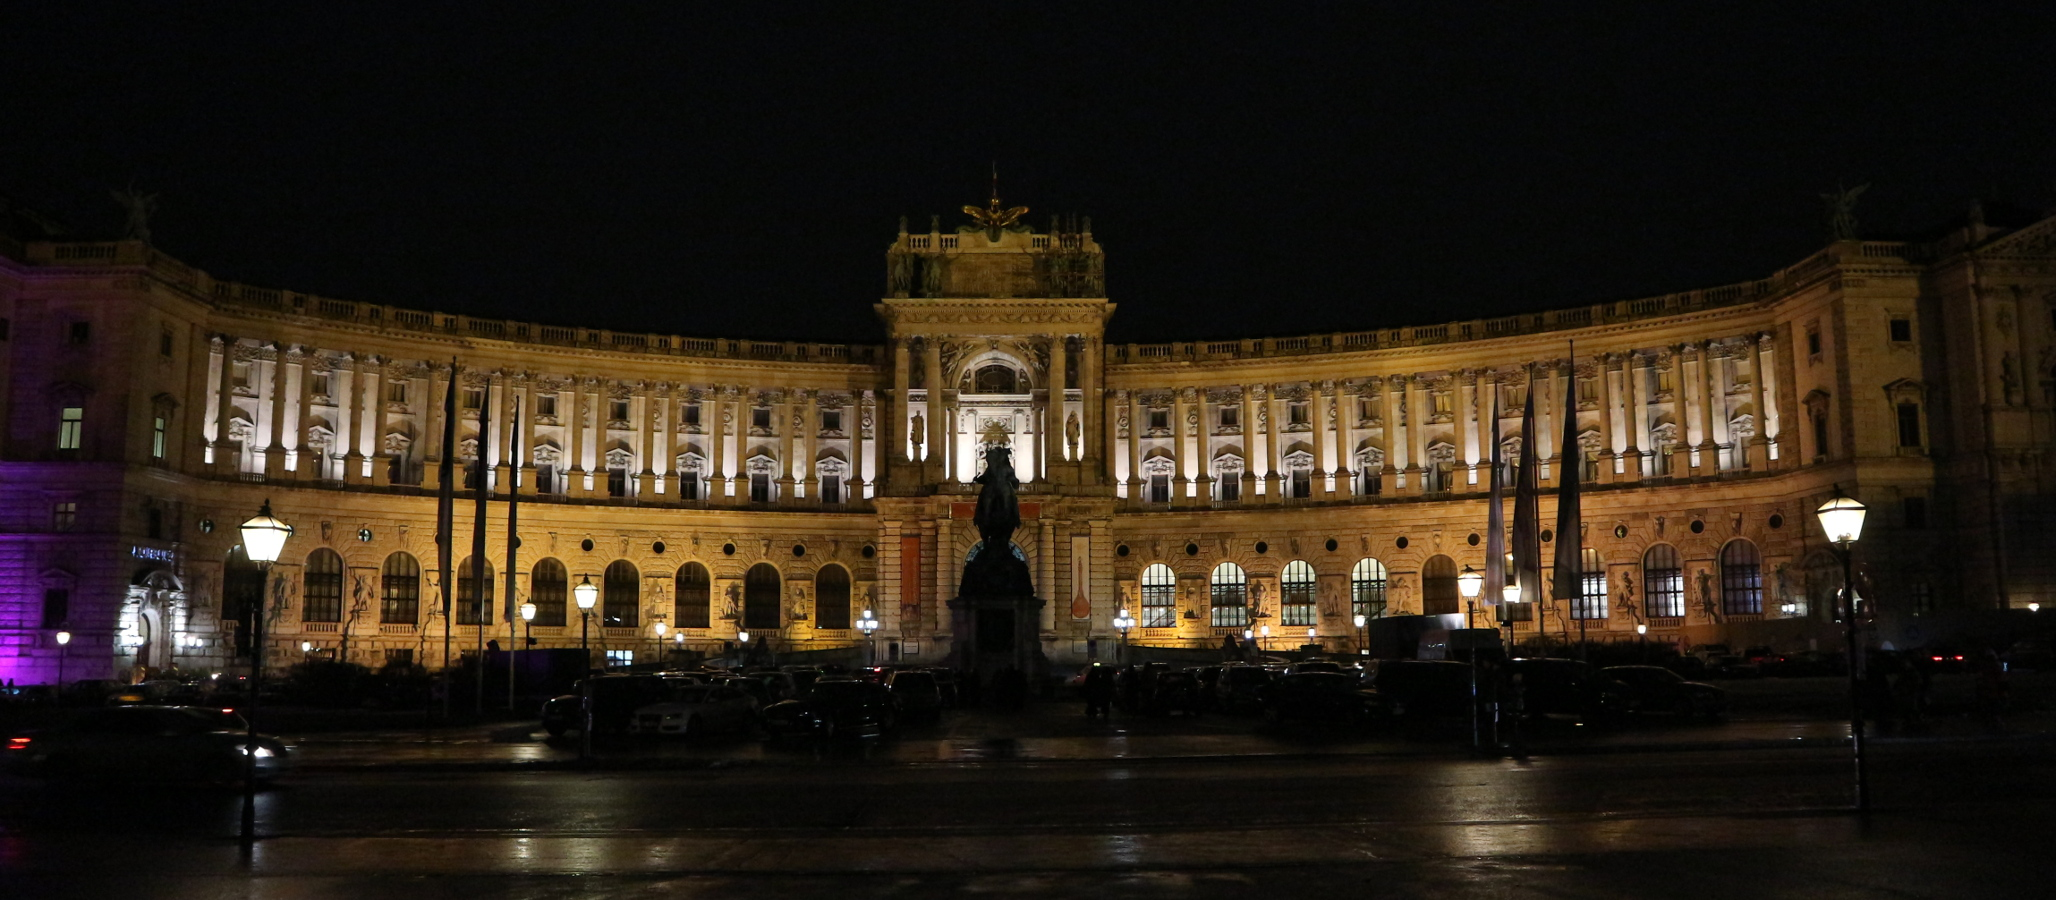 The Neue Burg (a newer wing attached to the Hofburg).